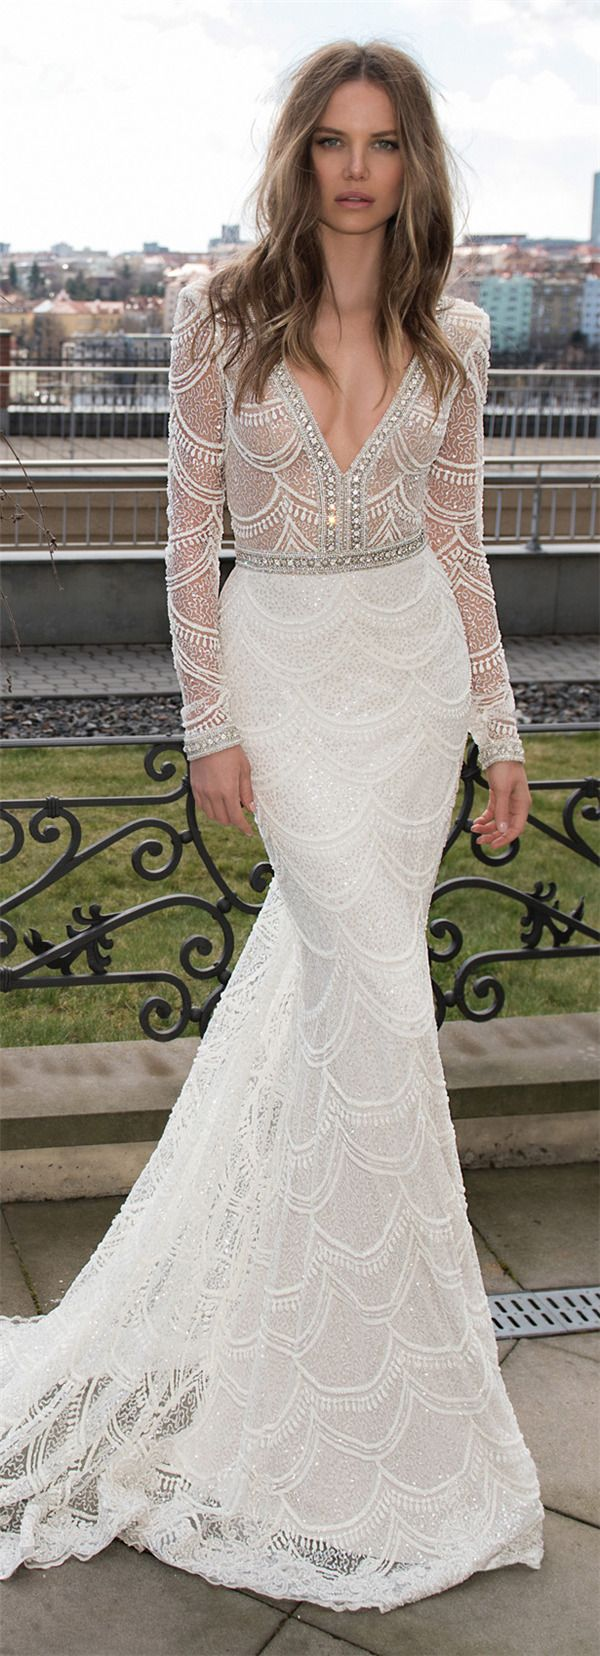 pearl encrusted wedding gown